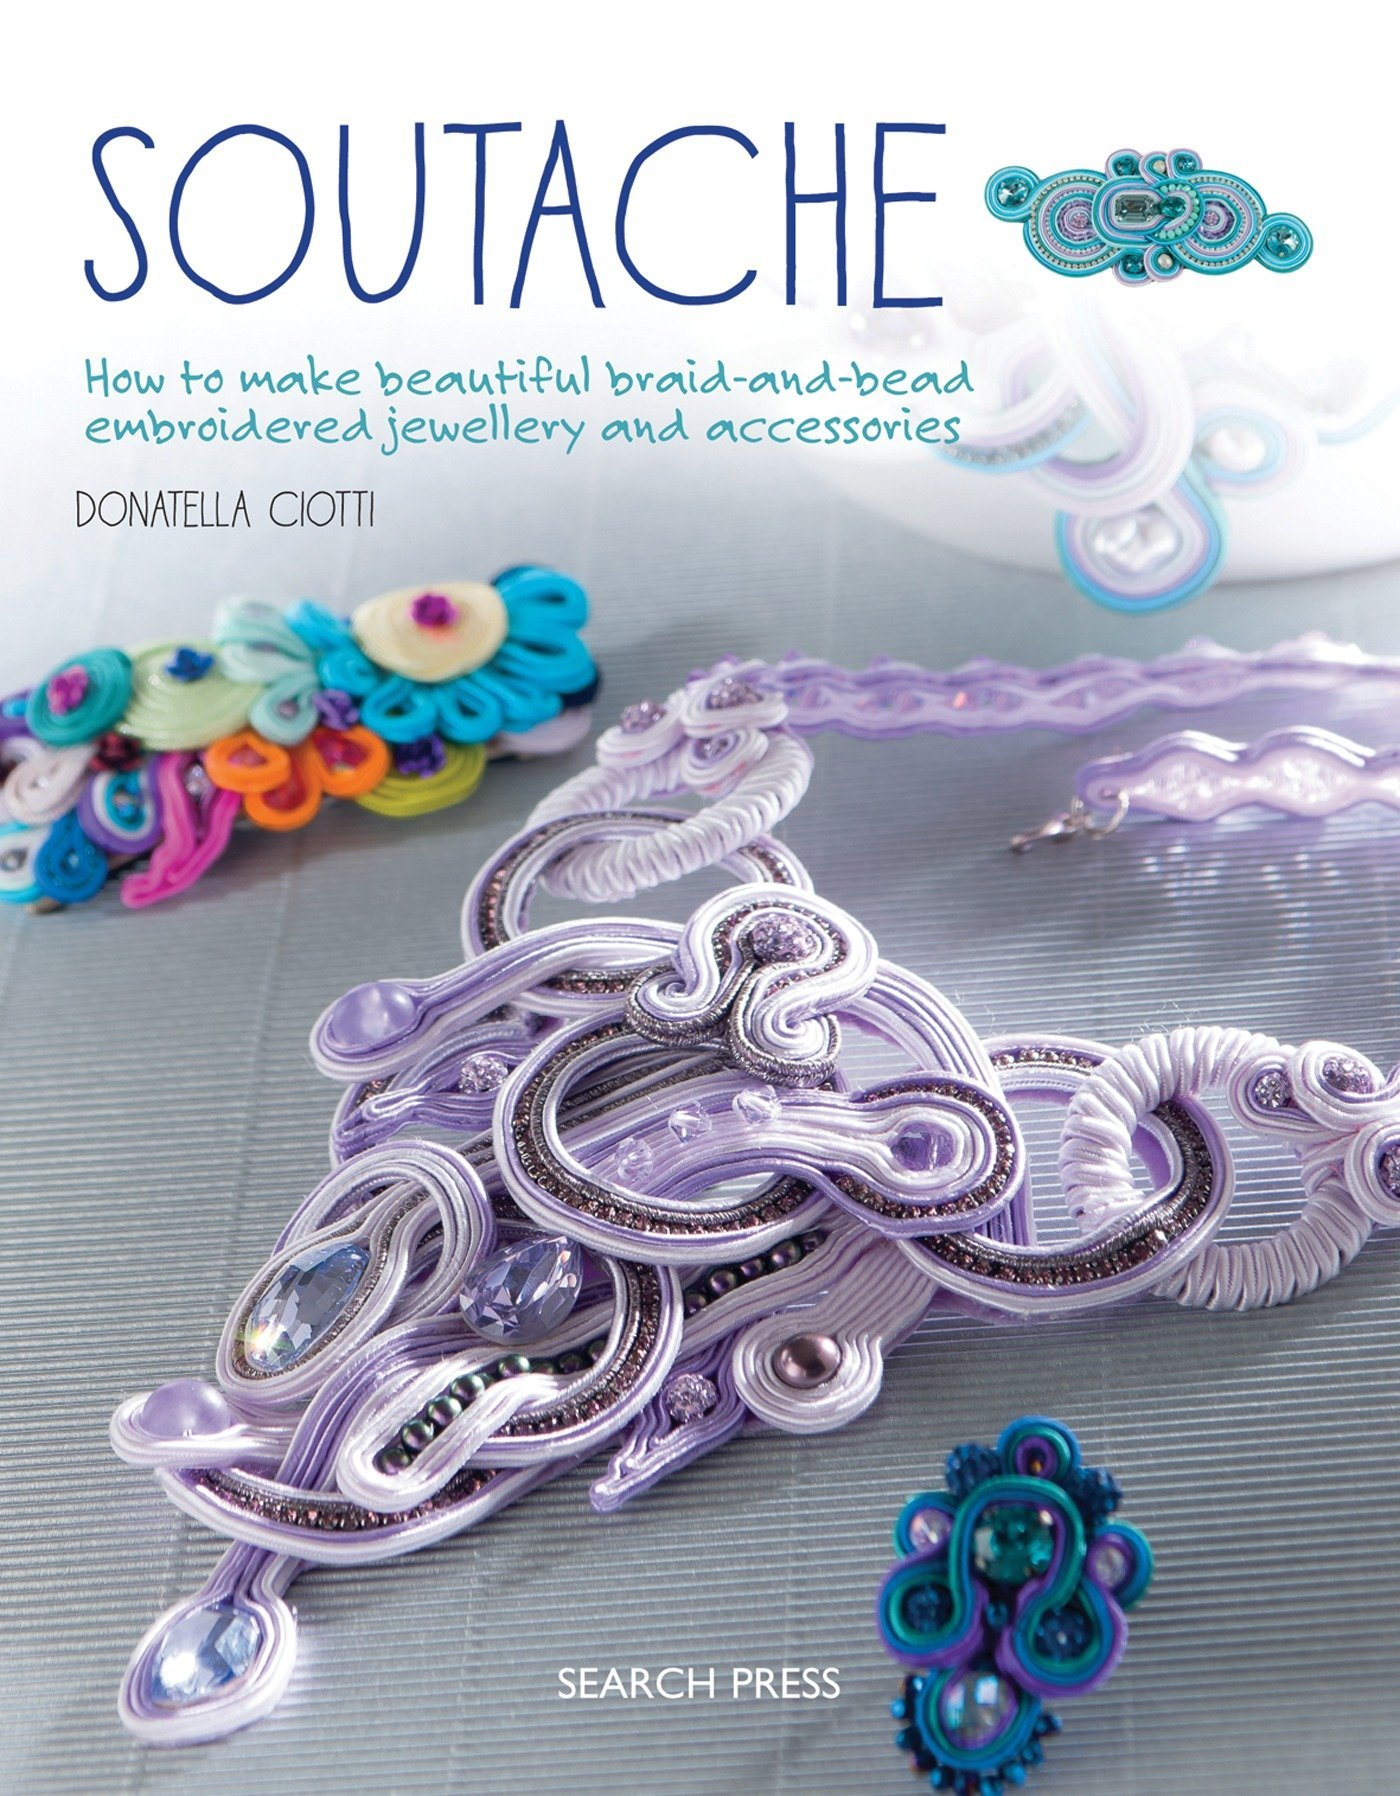 Soutache: How to make beautiful braid-and-bead embroidered jewellery and accessories pdf